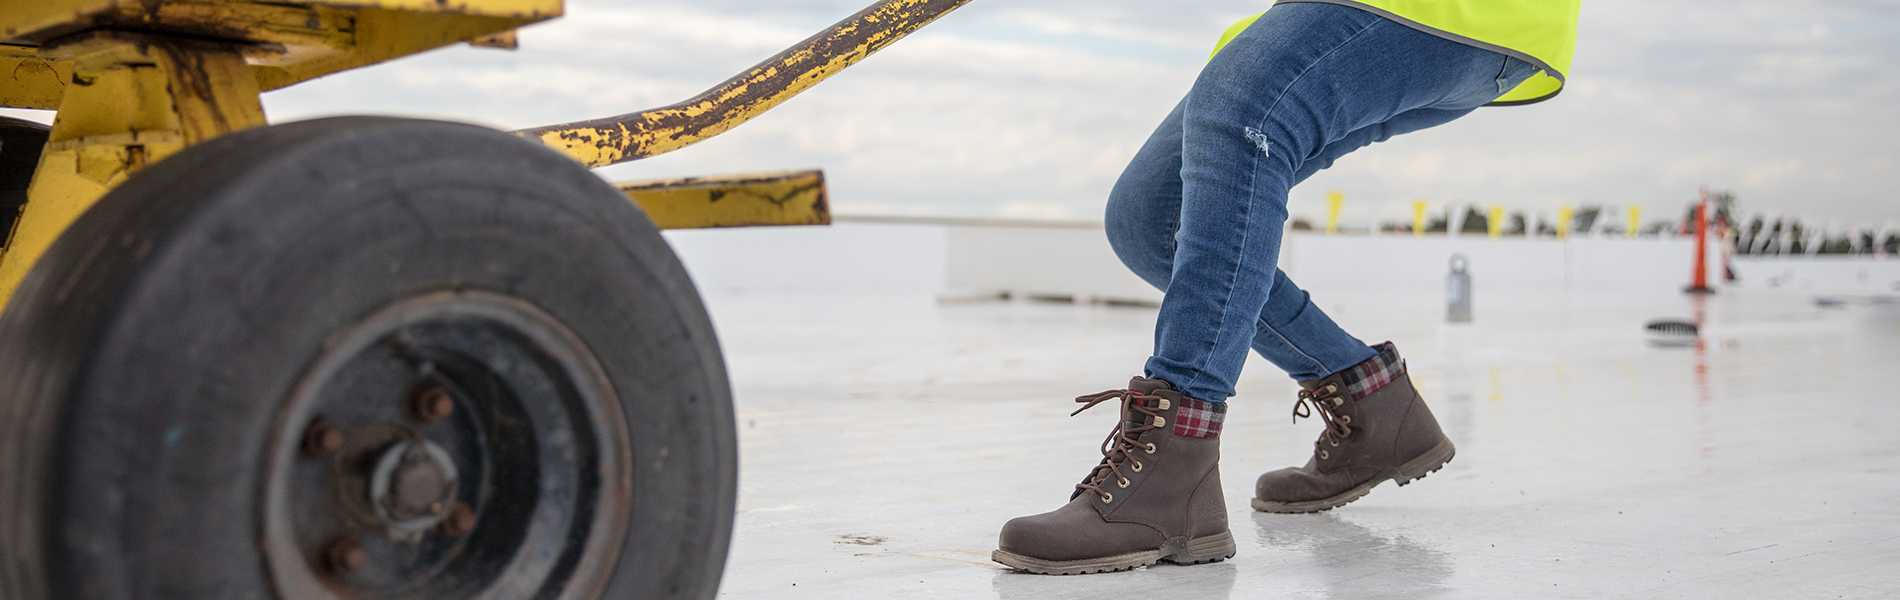 big discount of 2019 how to find On Clearance Kenzie Steel Toe Work Boot